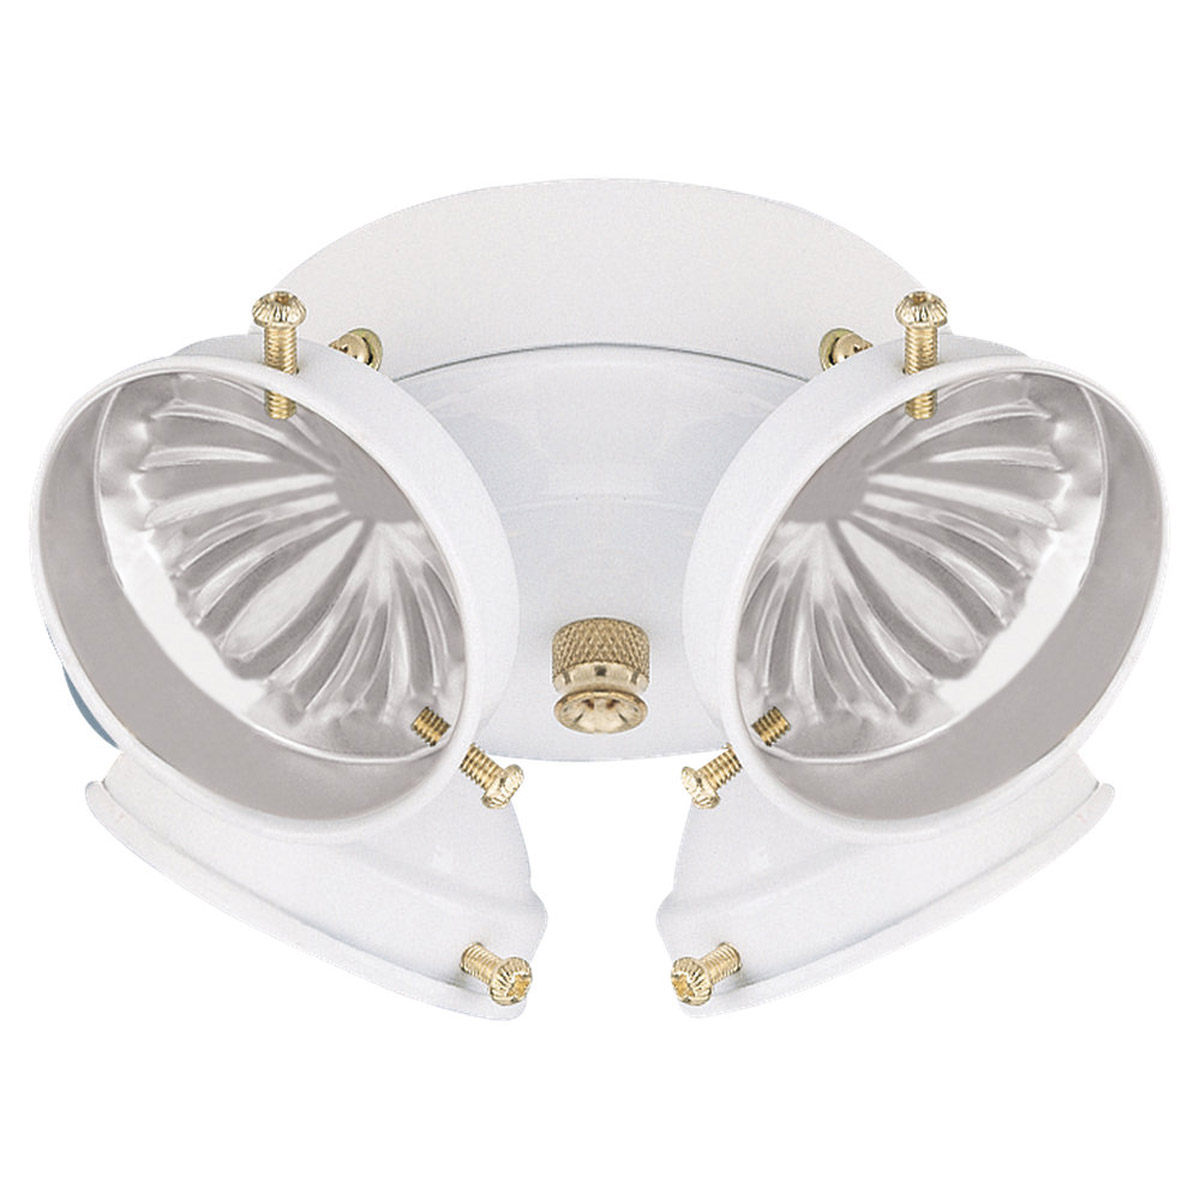 Sea Gull 16151B-15 Signature 4 Light White Fan Light Kit photo